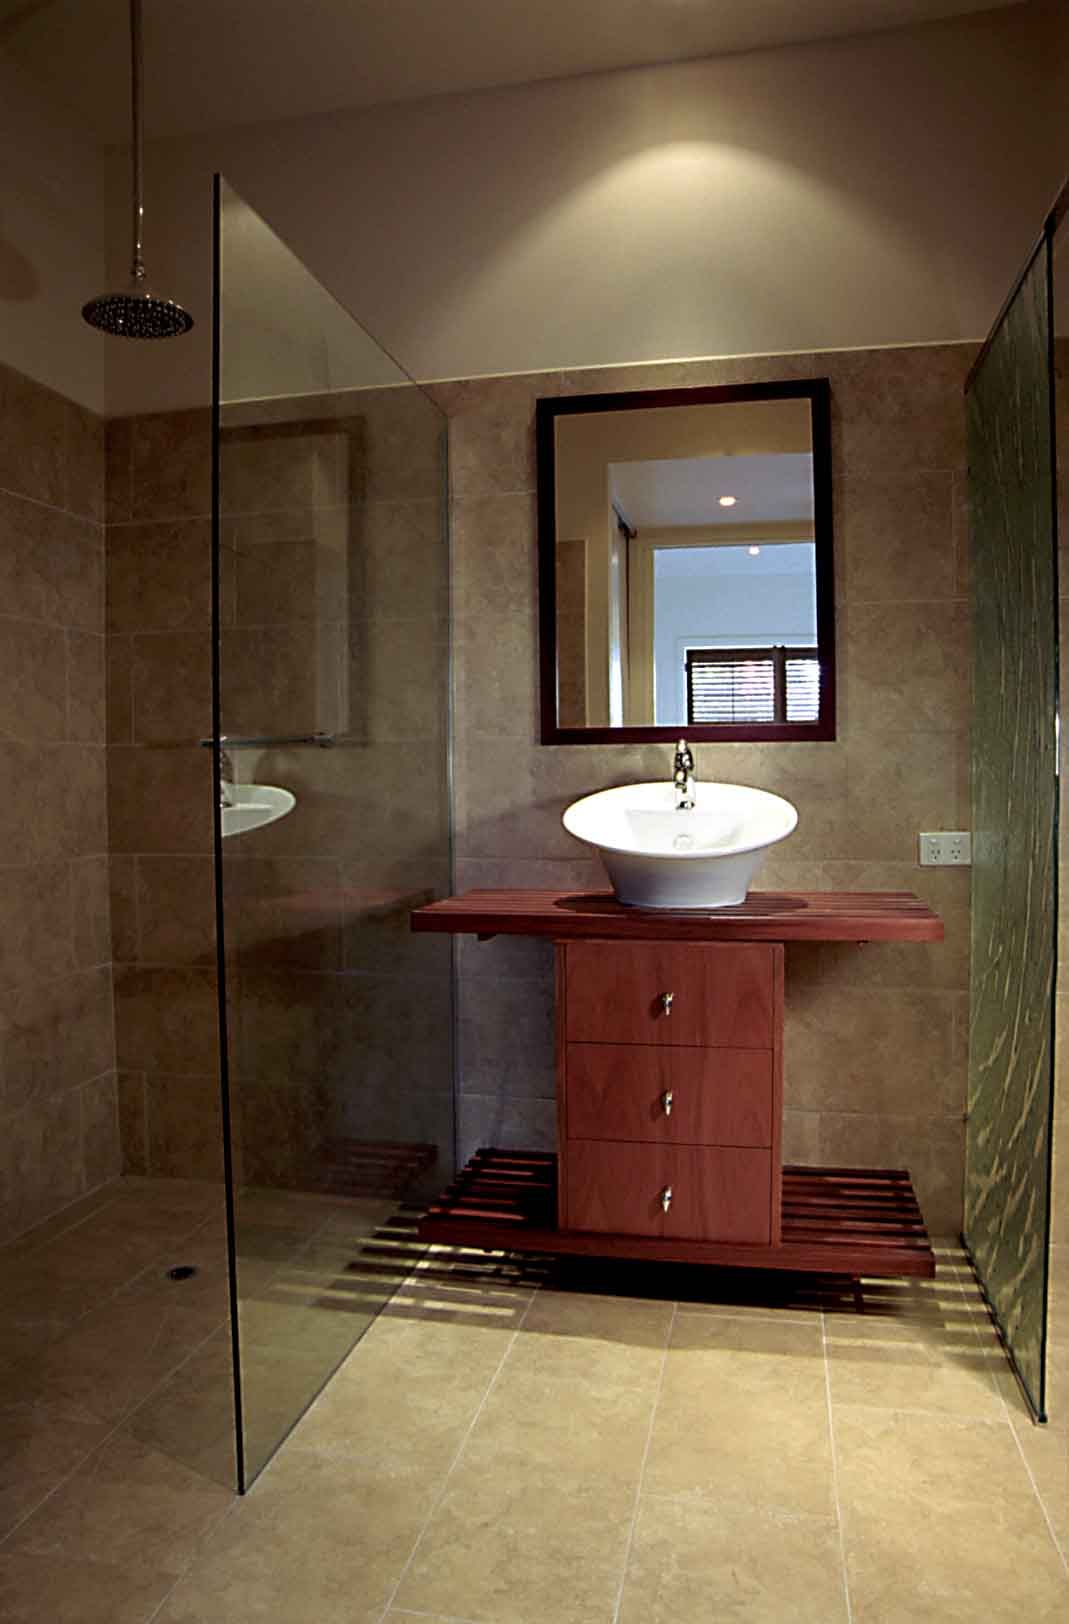 Wet room design for small bathrooms small ensuite for Ensuite design ideas